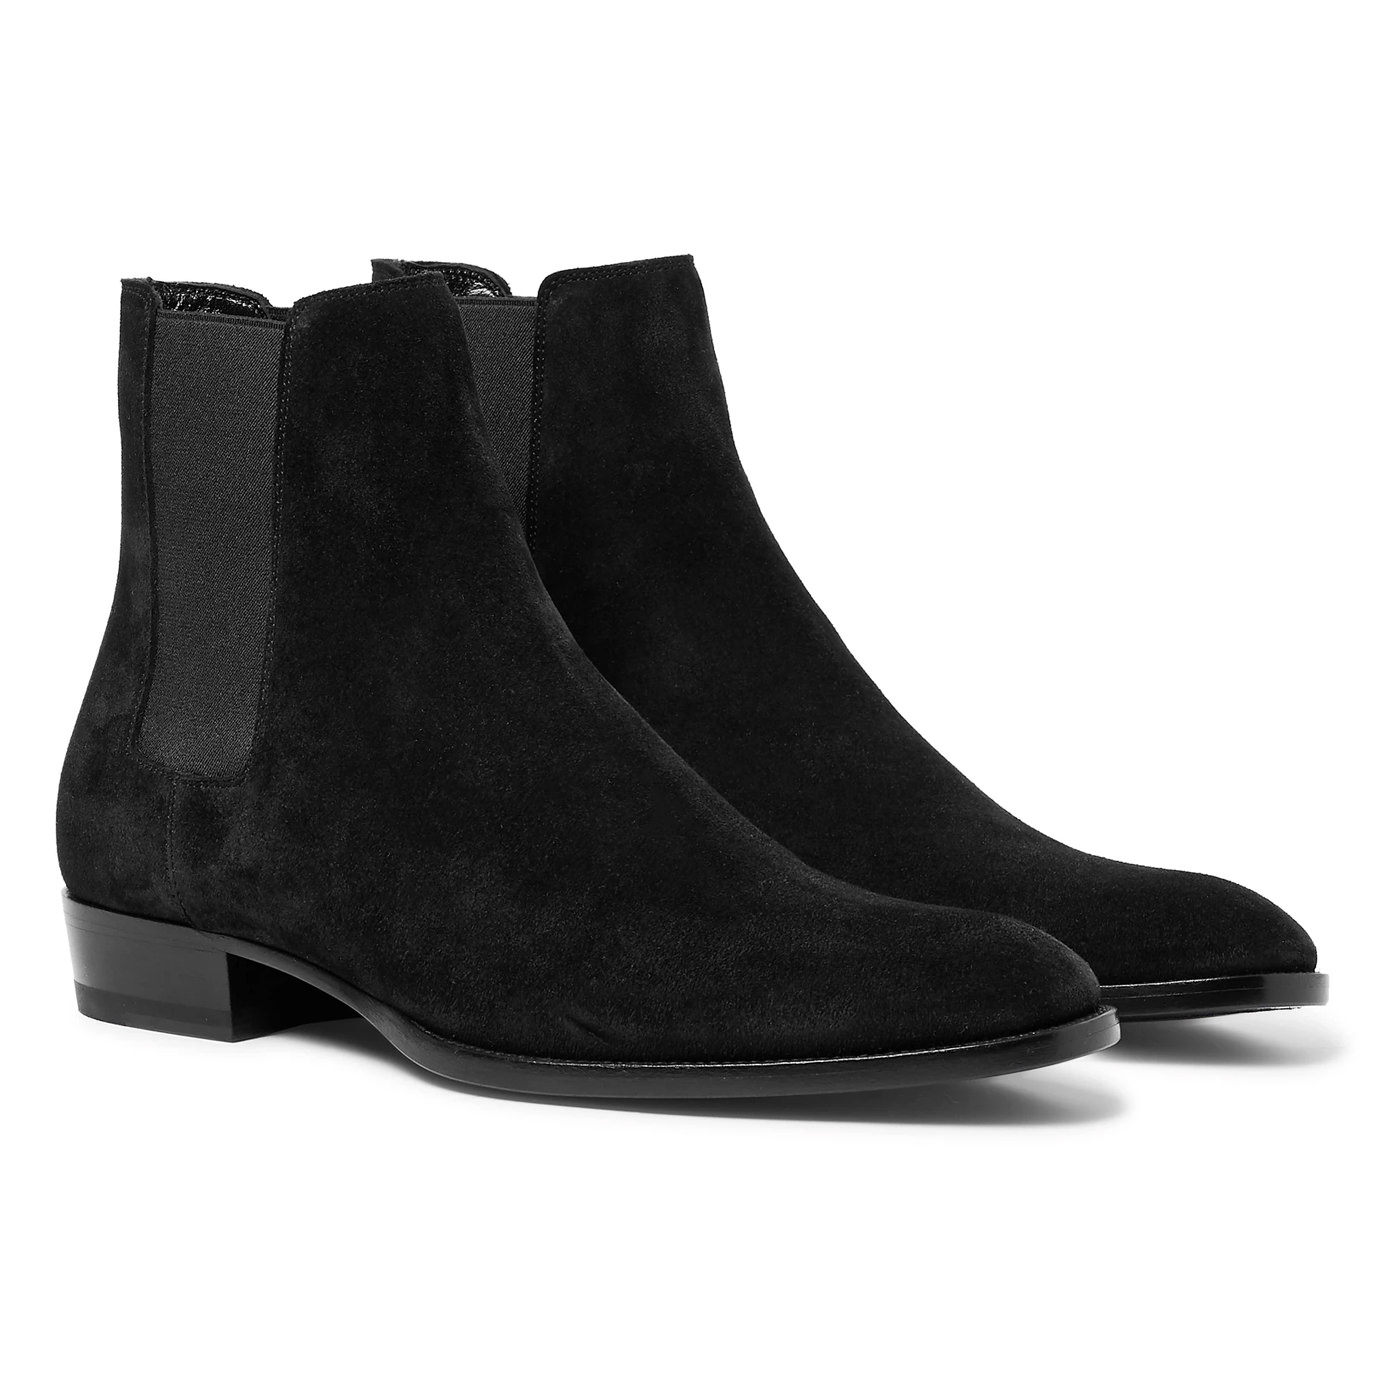 Style Mr Porter Boots Bottines Saint Laurent Daim Noir